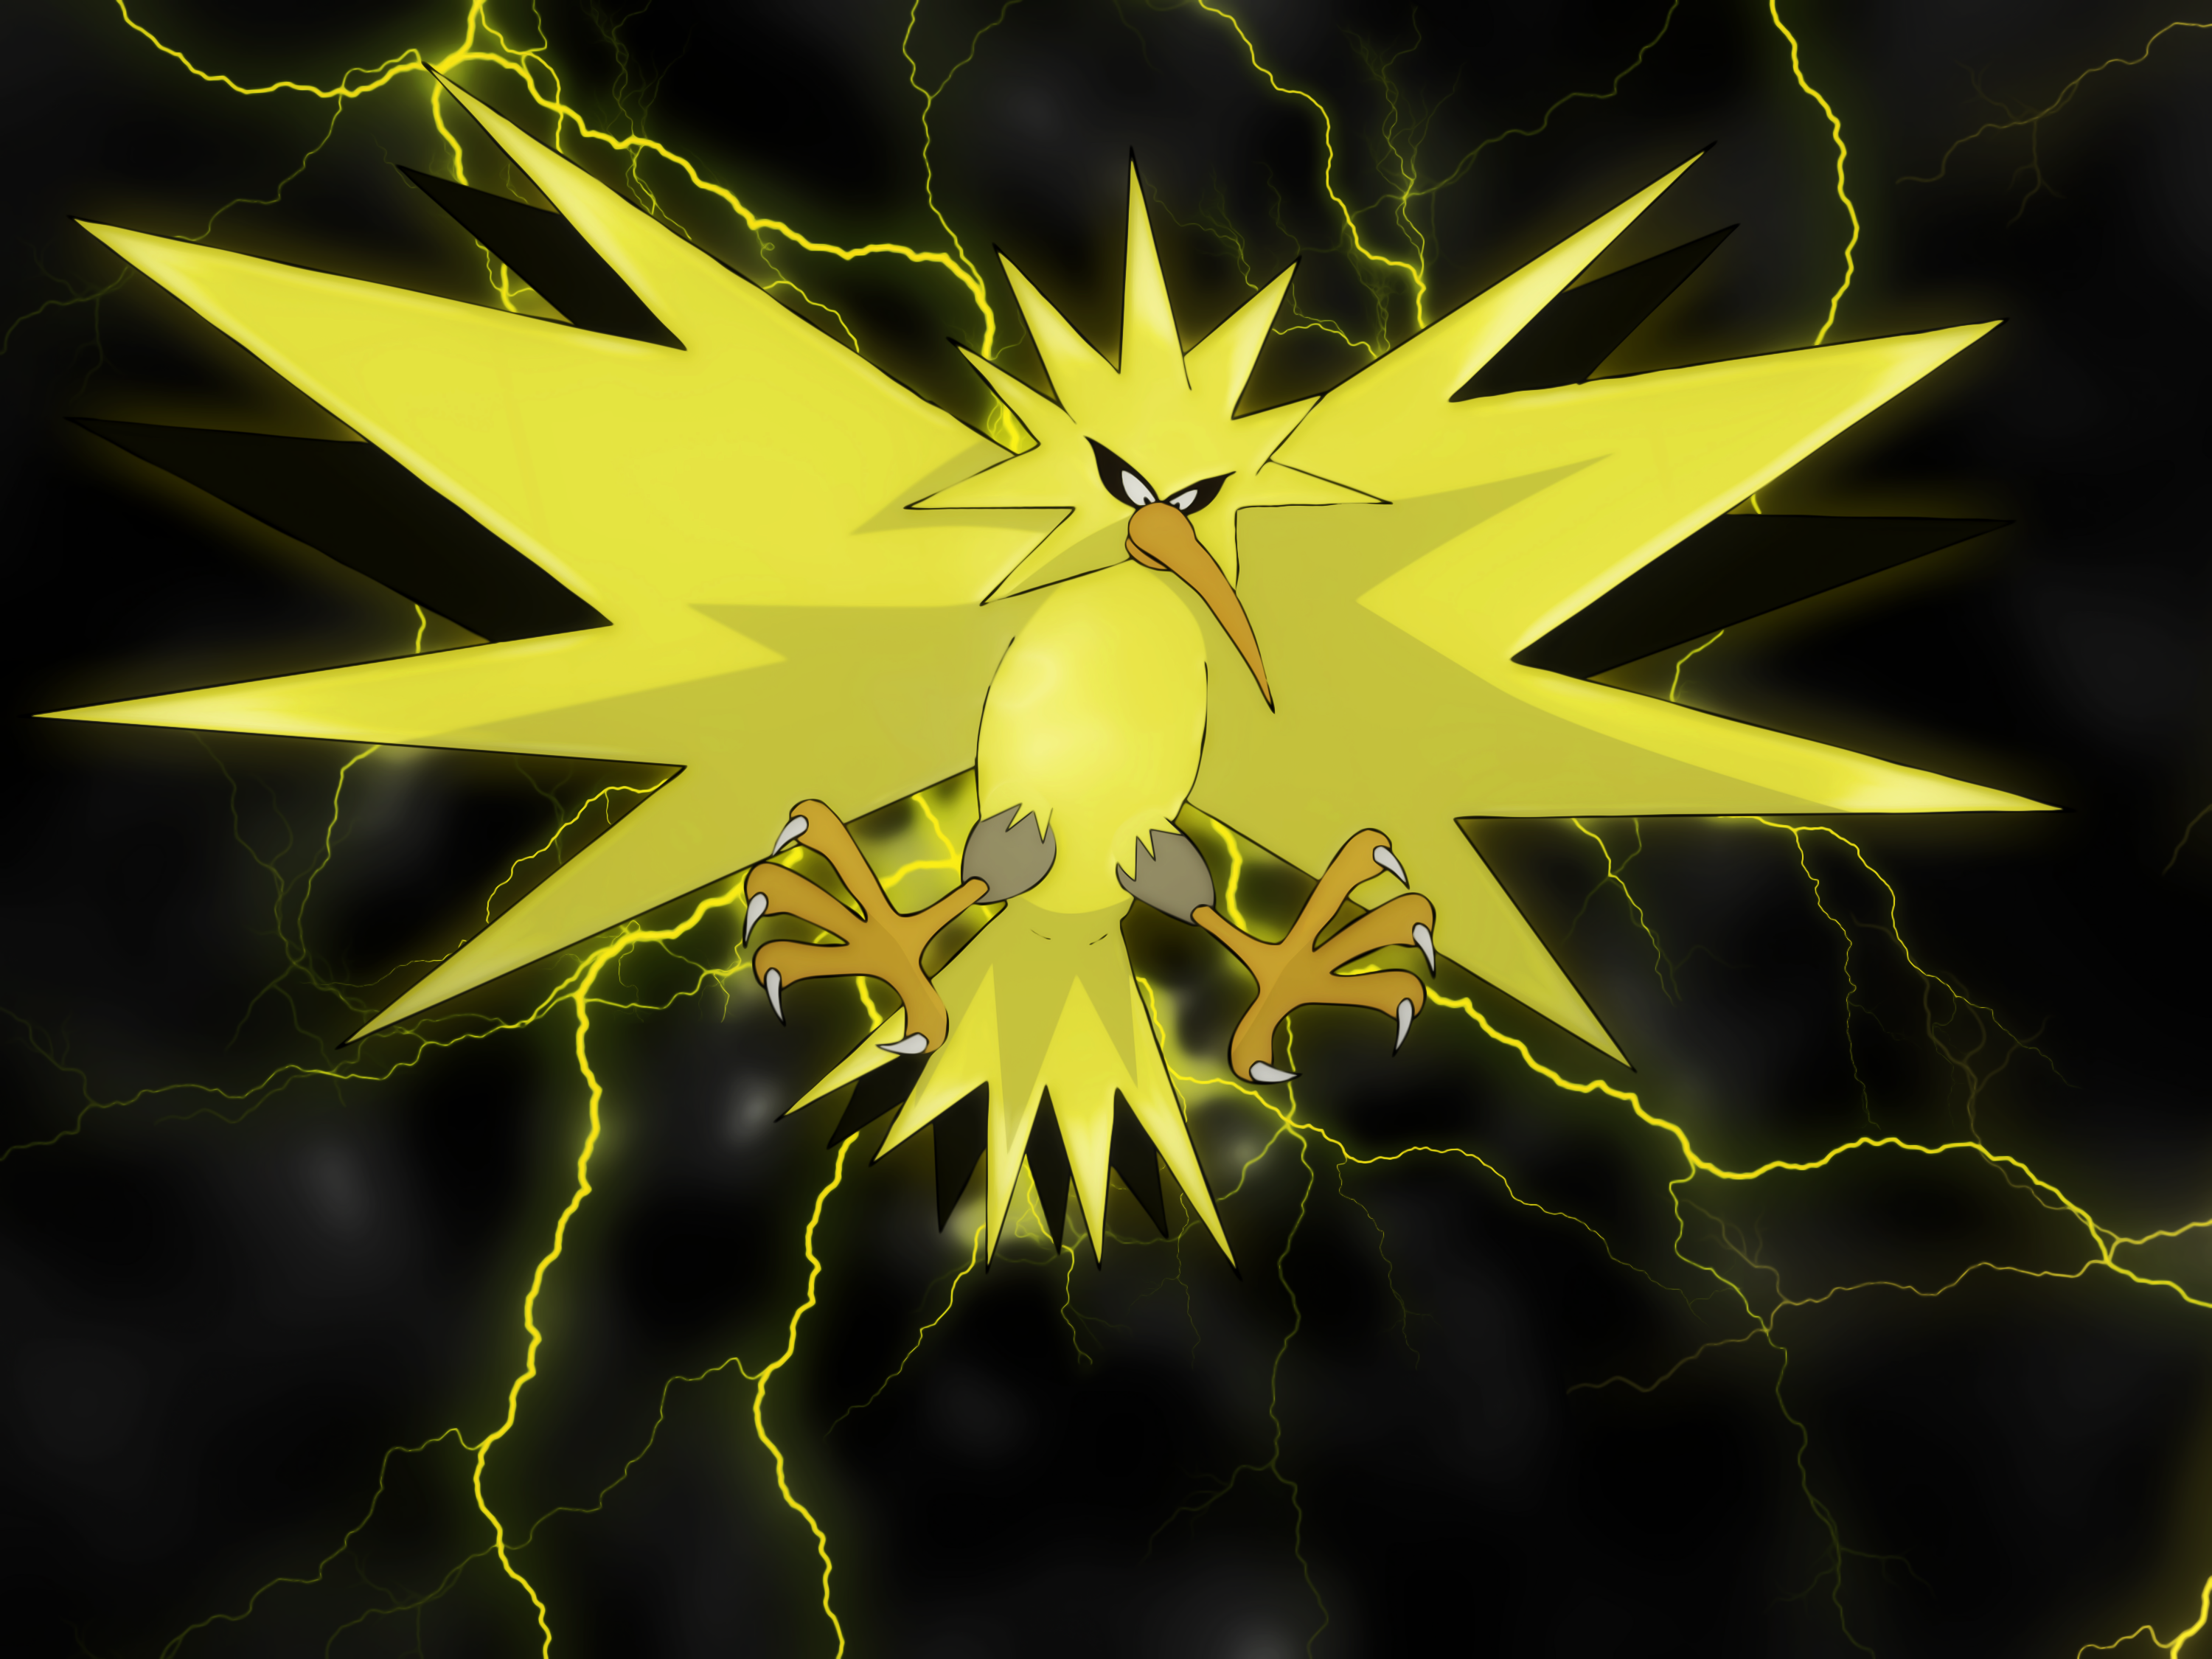 Zapdos Fearow Pokemon Is A Theory Images | Pokemon Images